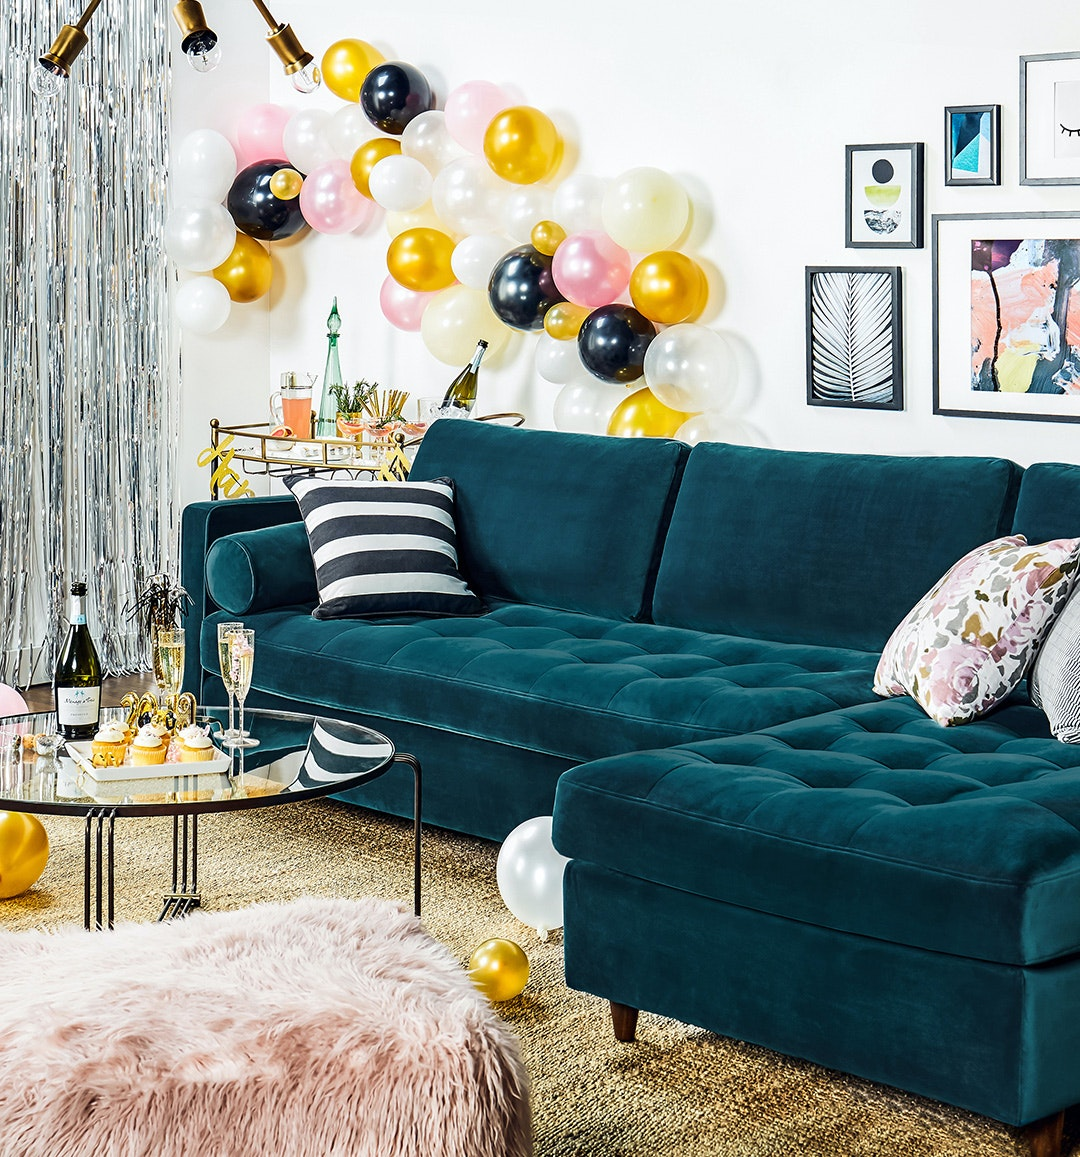 New Year's Eve Entertaining Tips